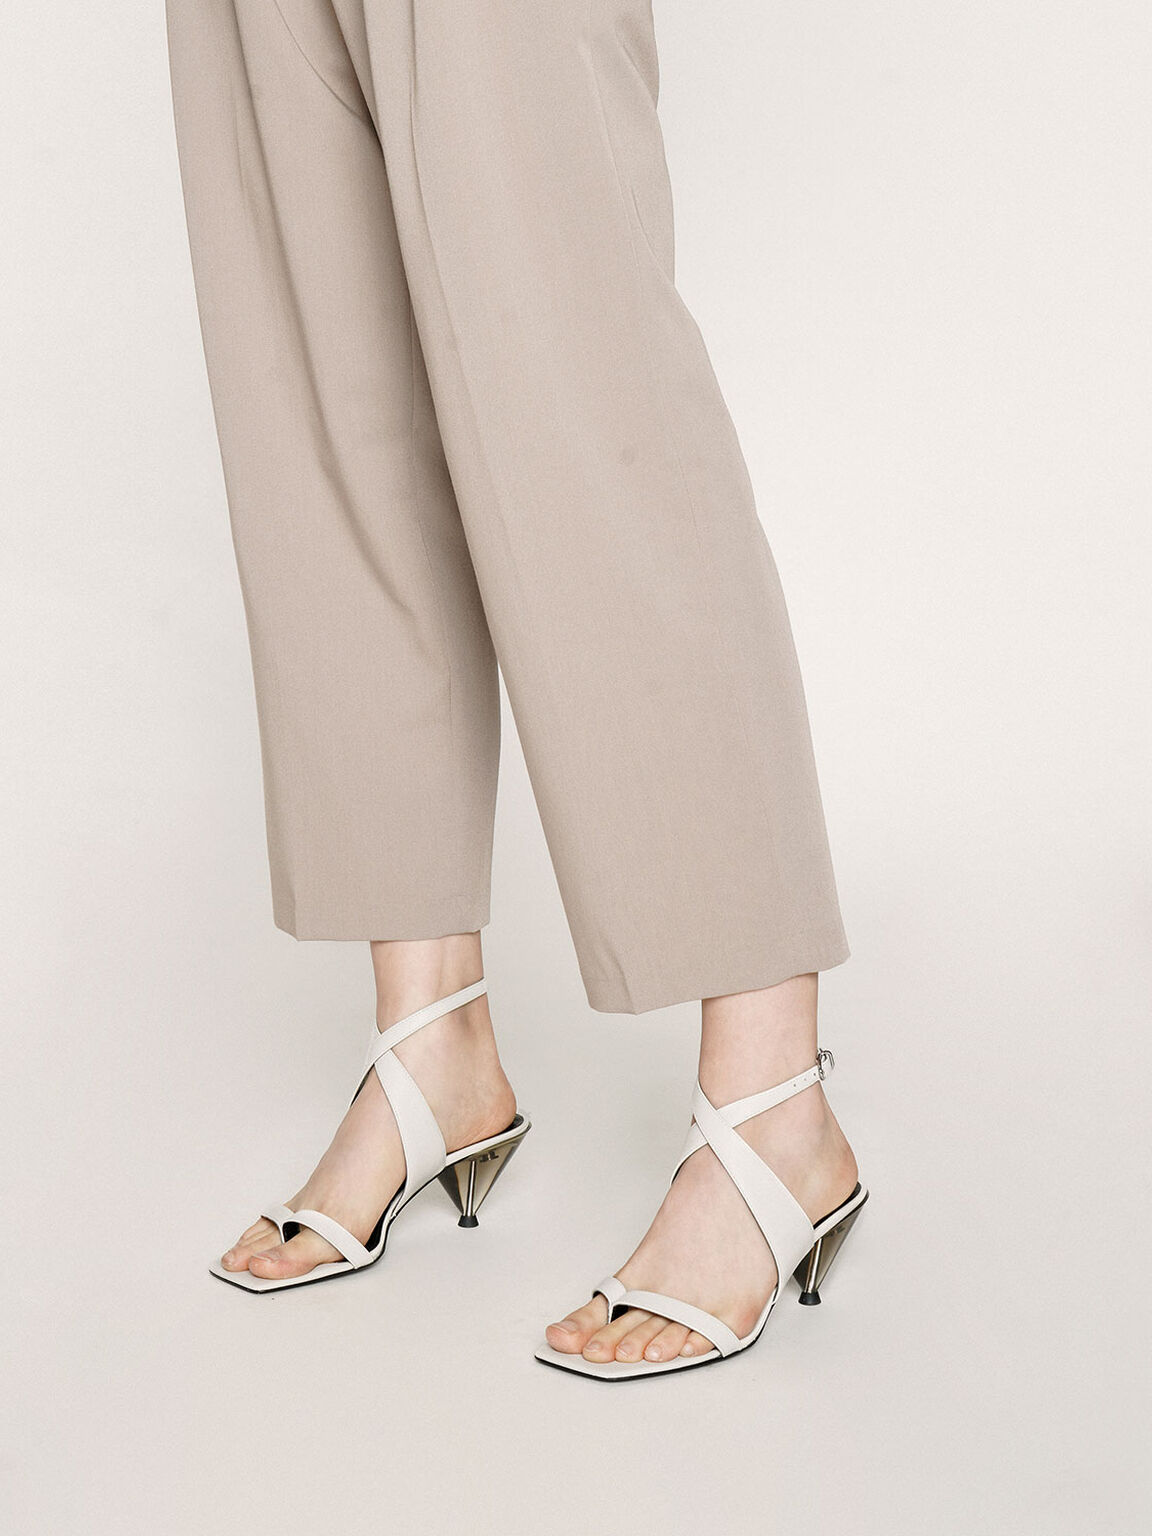 Leather Chrome Heel Sandals, White, hi-res